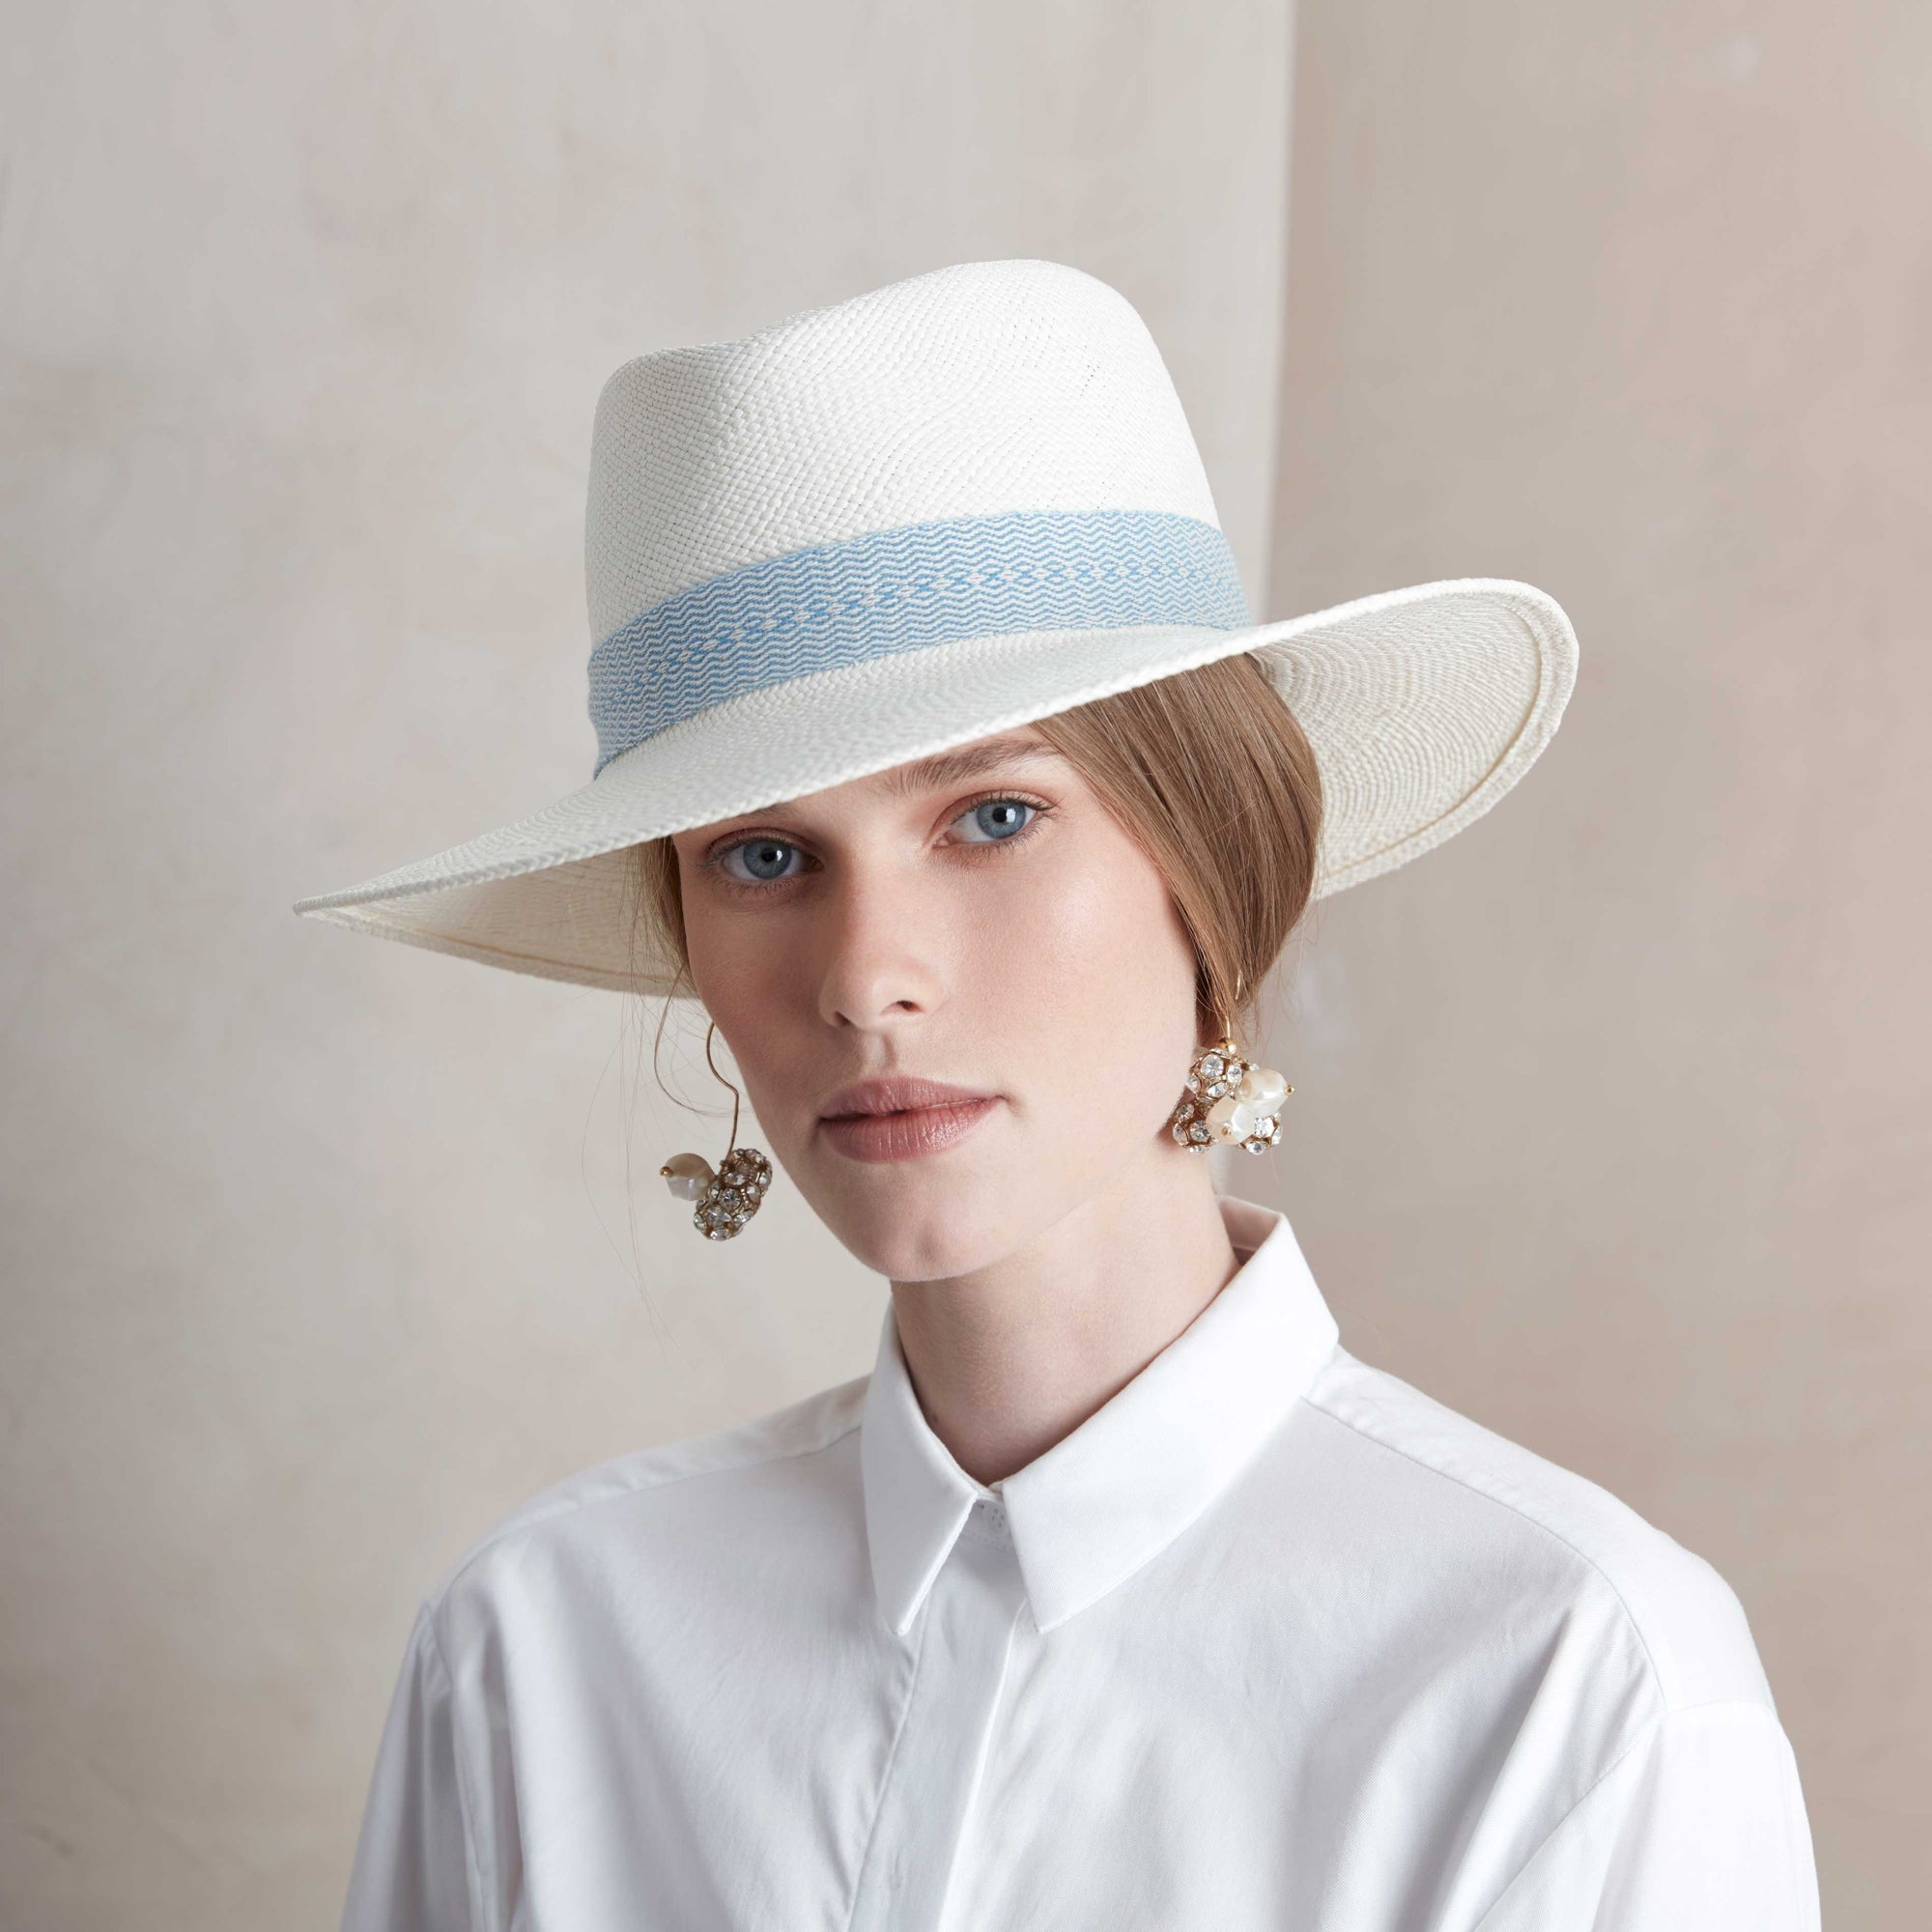 The Nile Panama - Women's hats - Lock & Co. Hatters London UK